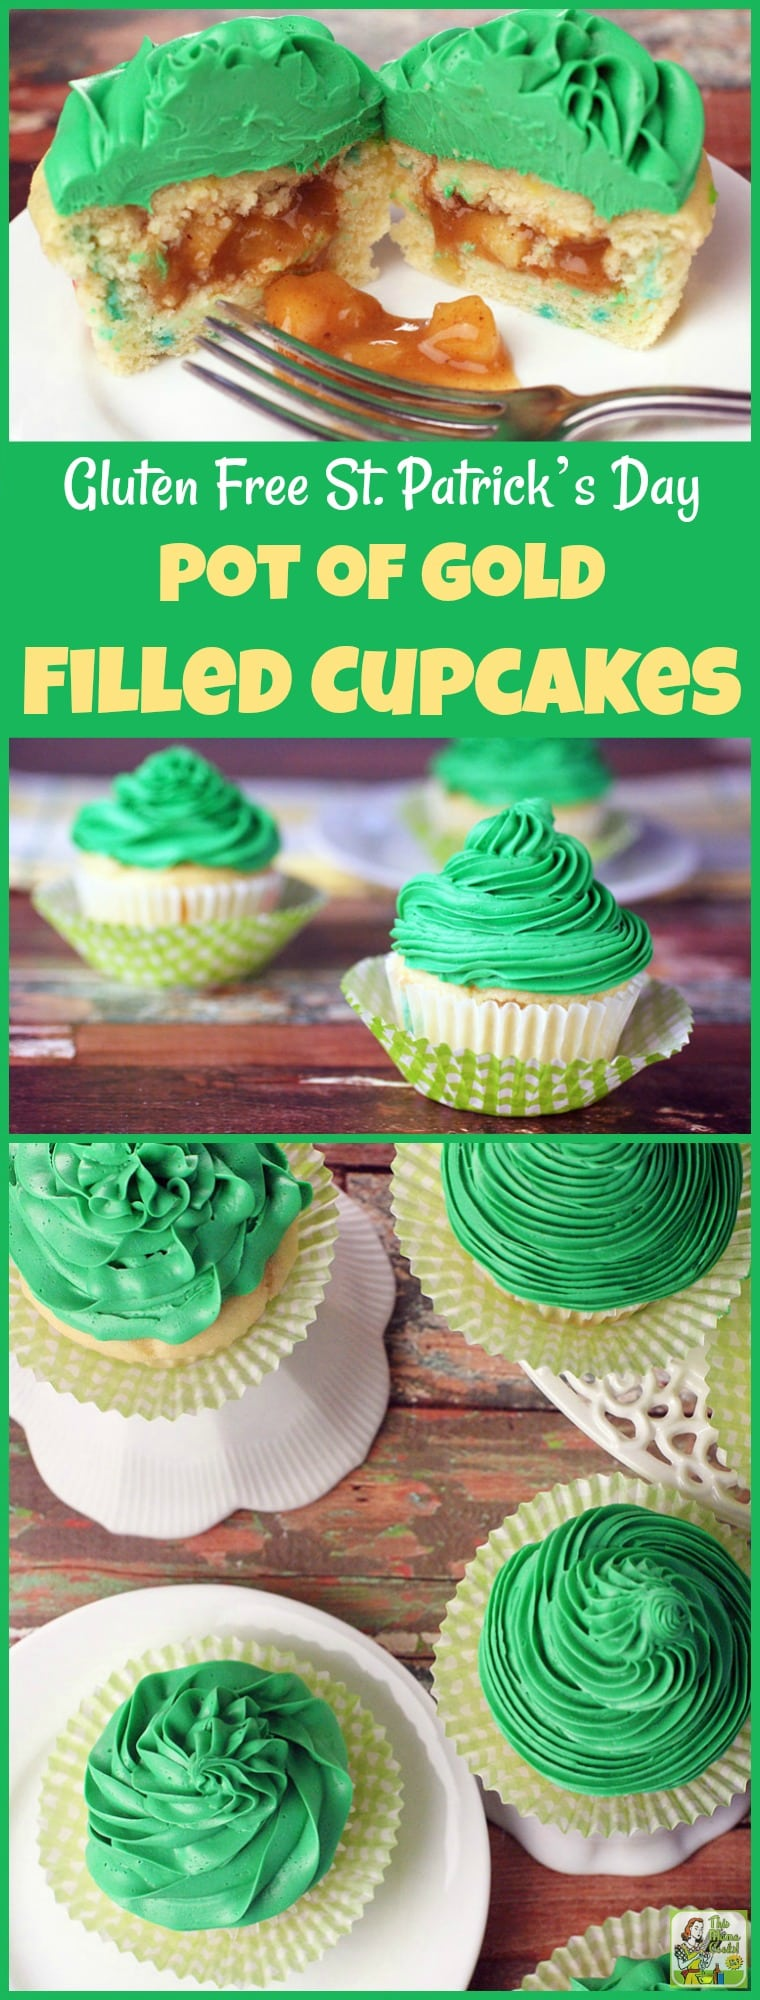 Making this Gluten Free St. Patrick's Day Pot of Gold Filled Cupcakes recipe is easier than you think. This gluten free cupcake recipe uses box mix and frosting from the store. The apple pie filling can be made on your stovetop in less than 30 minutes. Use this cupcake filing technique for other holidays besides St. Patrick\'s Day when you need a fun gluten-free dessert! #stpatricksday #glutenfree #applepiefilling #baking #bakingrecipes #cupcakes #cupcakerecipes #cupcakerecipeseasy #dessert...